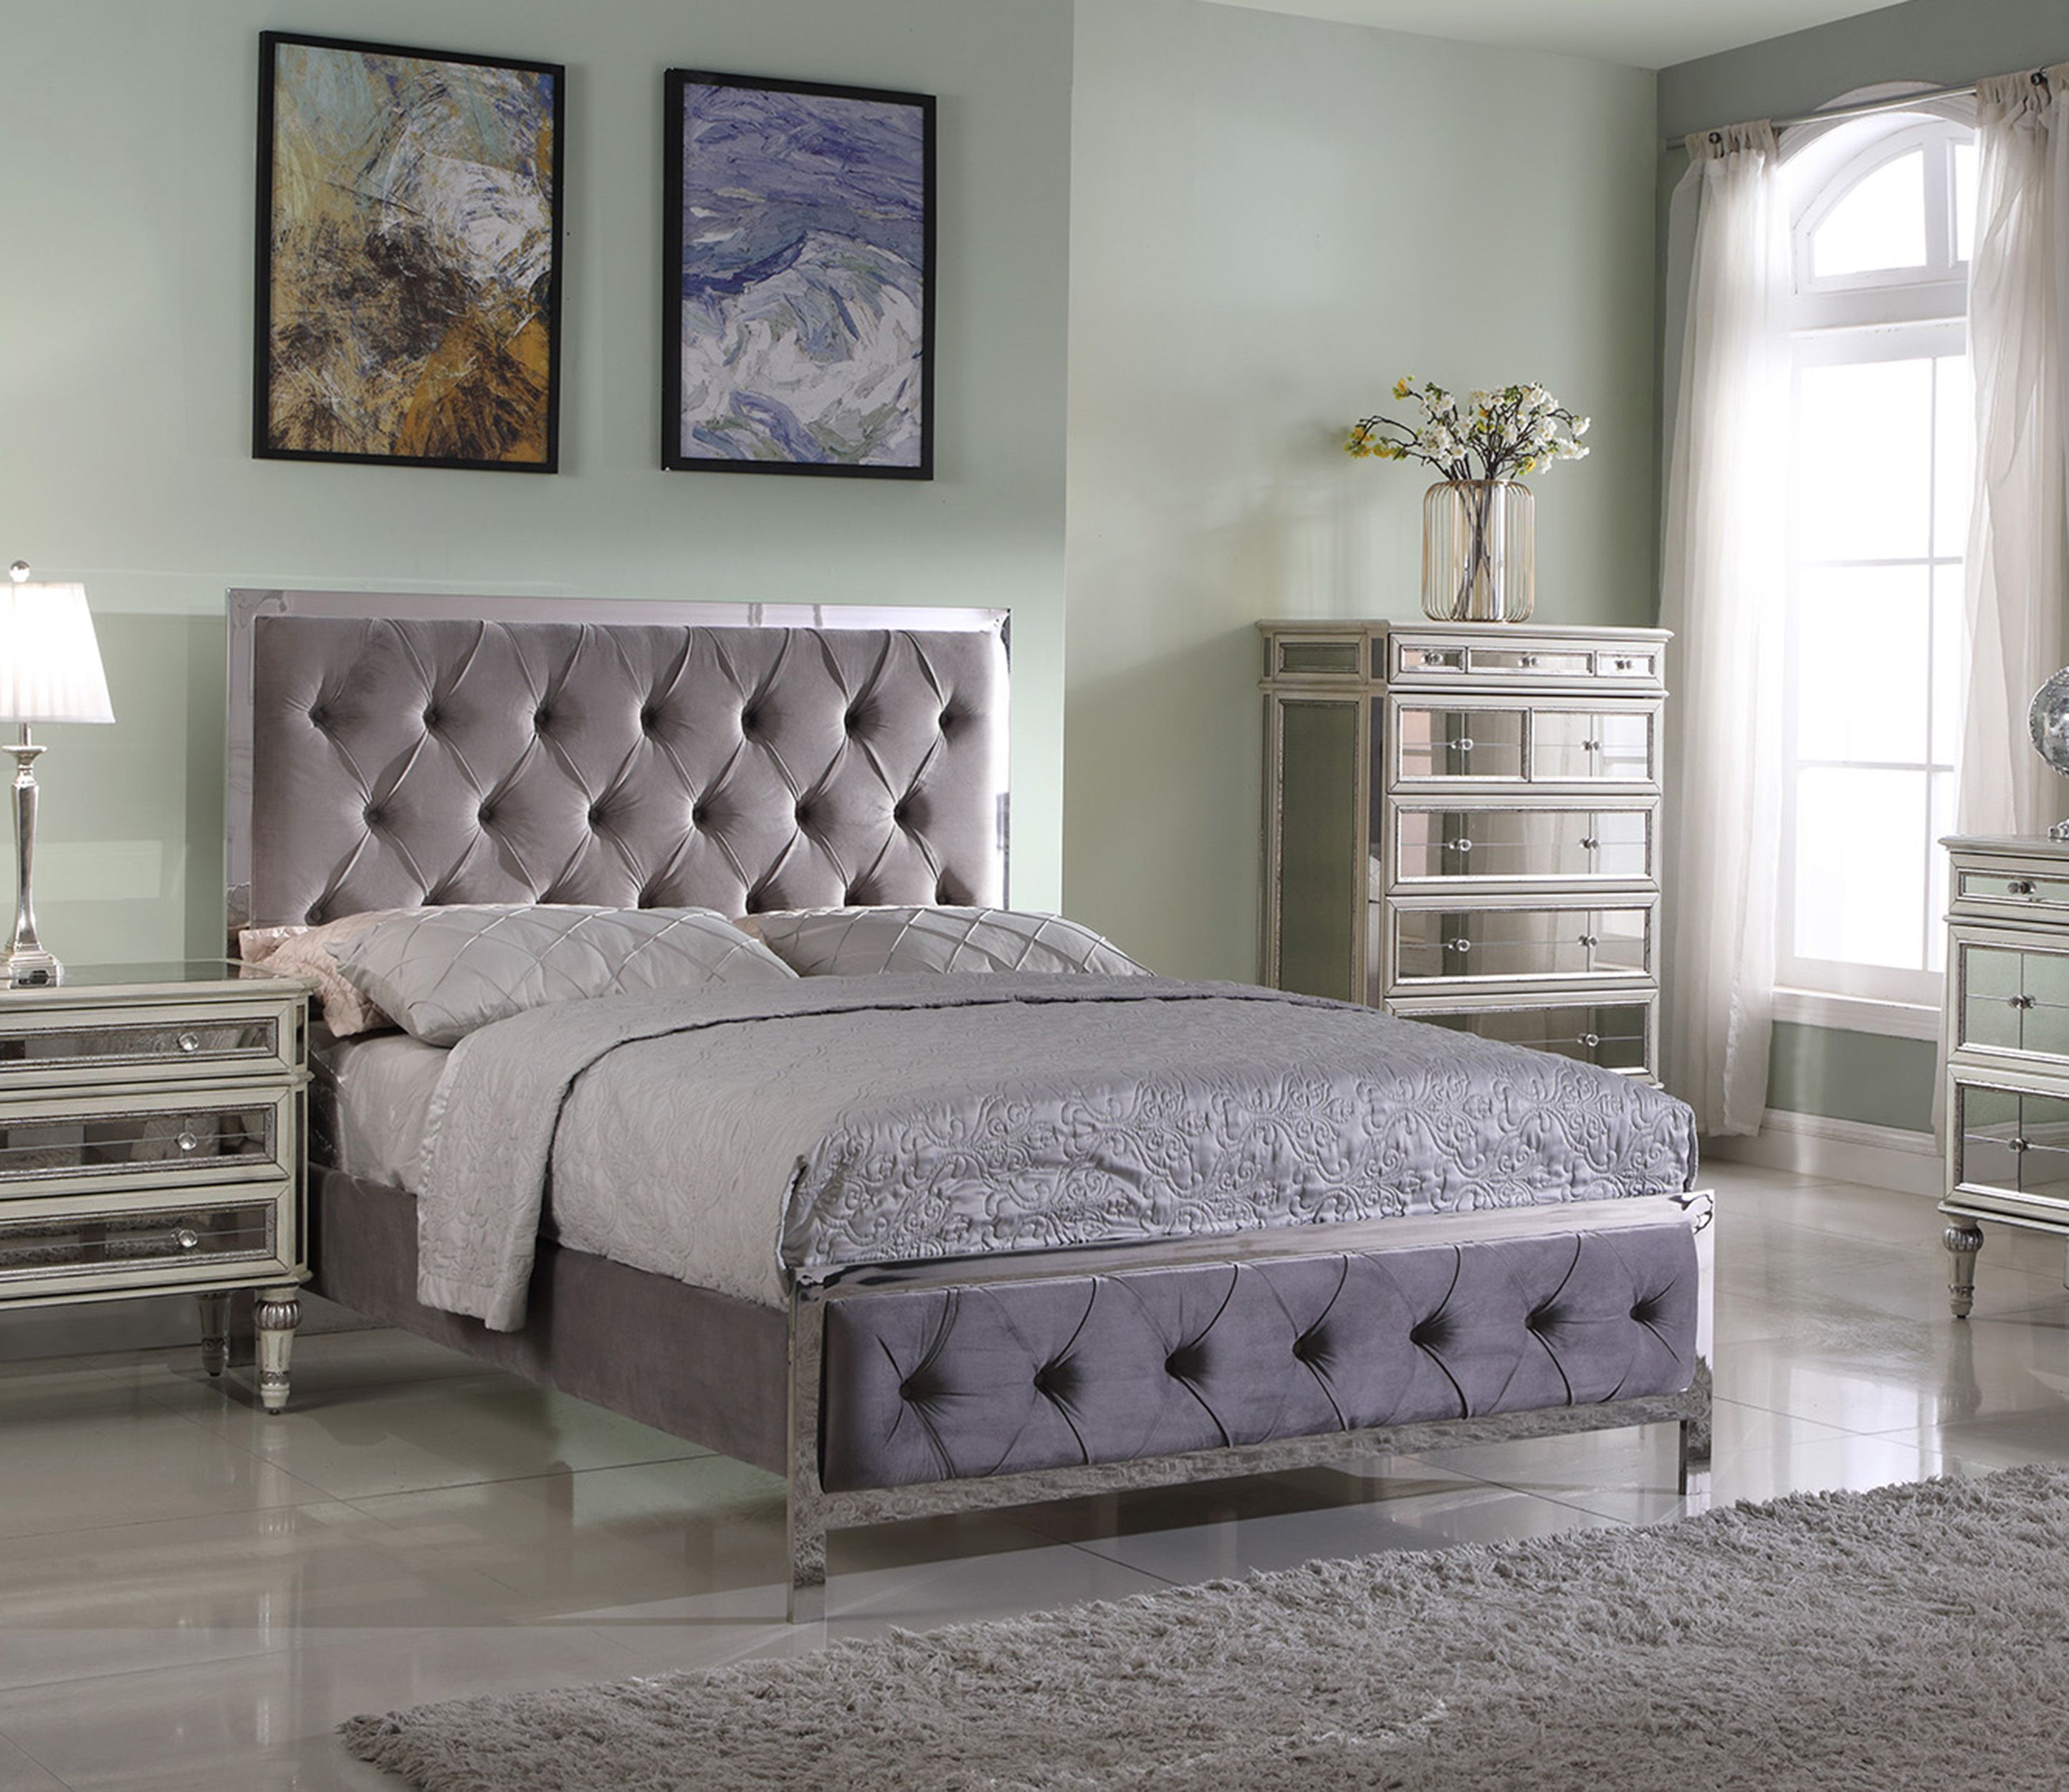 Add class and sophistication into any bedroom with this